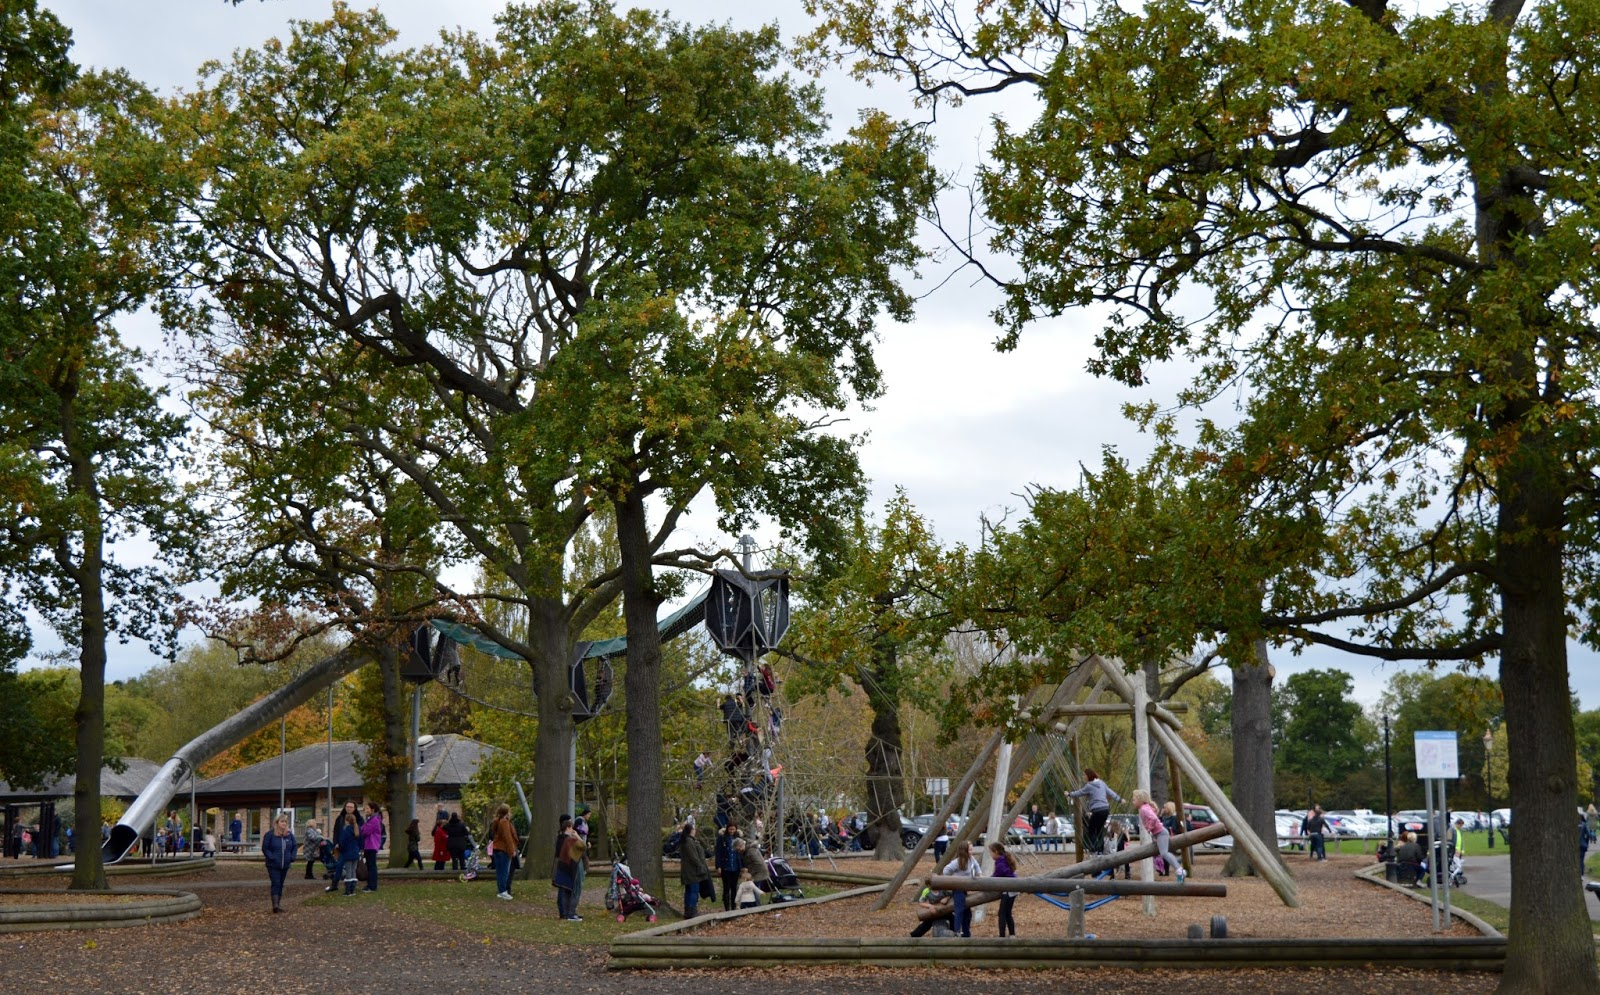 The Best Value Annual Passes for North East England  - preston park